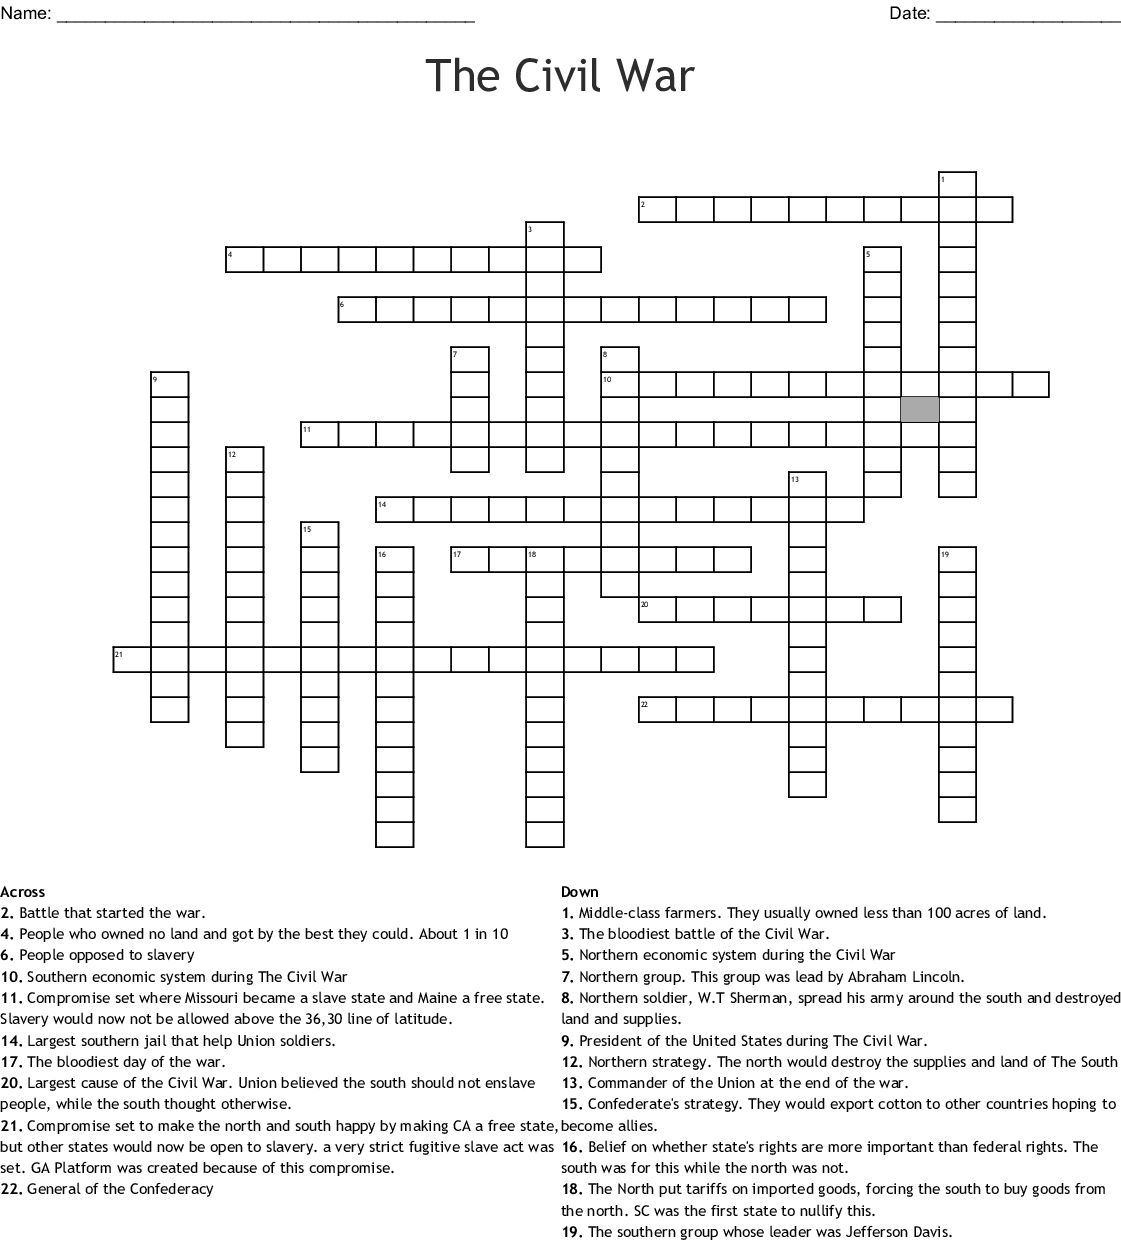 picture relating to Star Wars Crossword Puzzles Printable identify The Civil War Crossword - WordMint